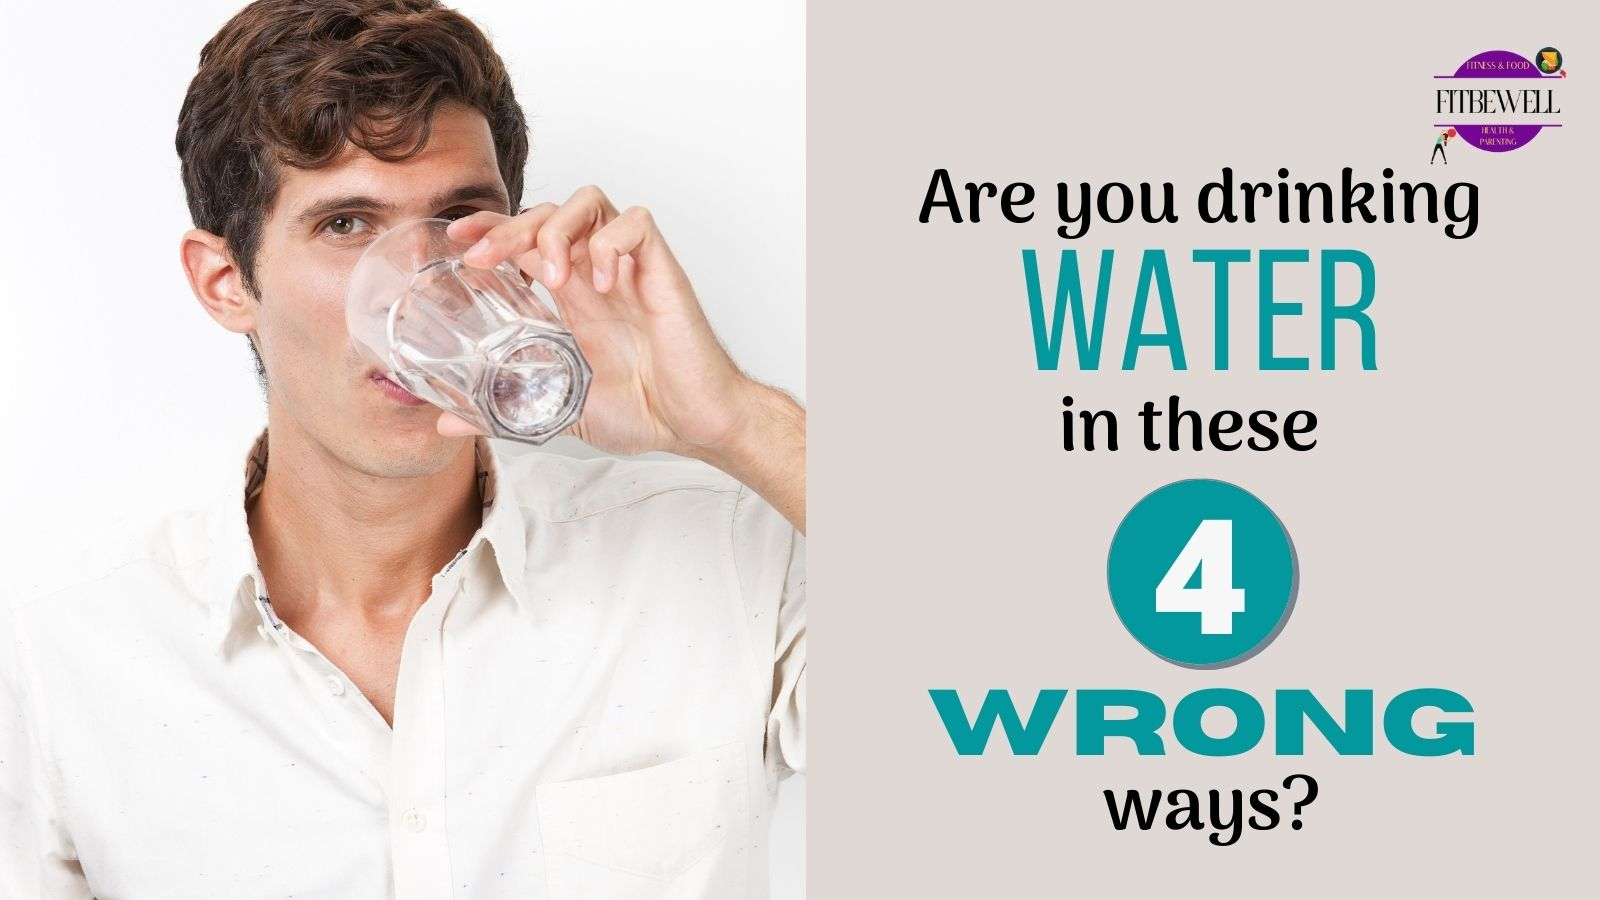 Are you drinking water in these 4 wrong ways?